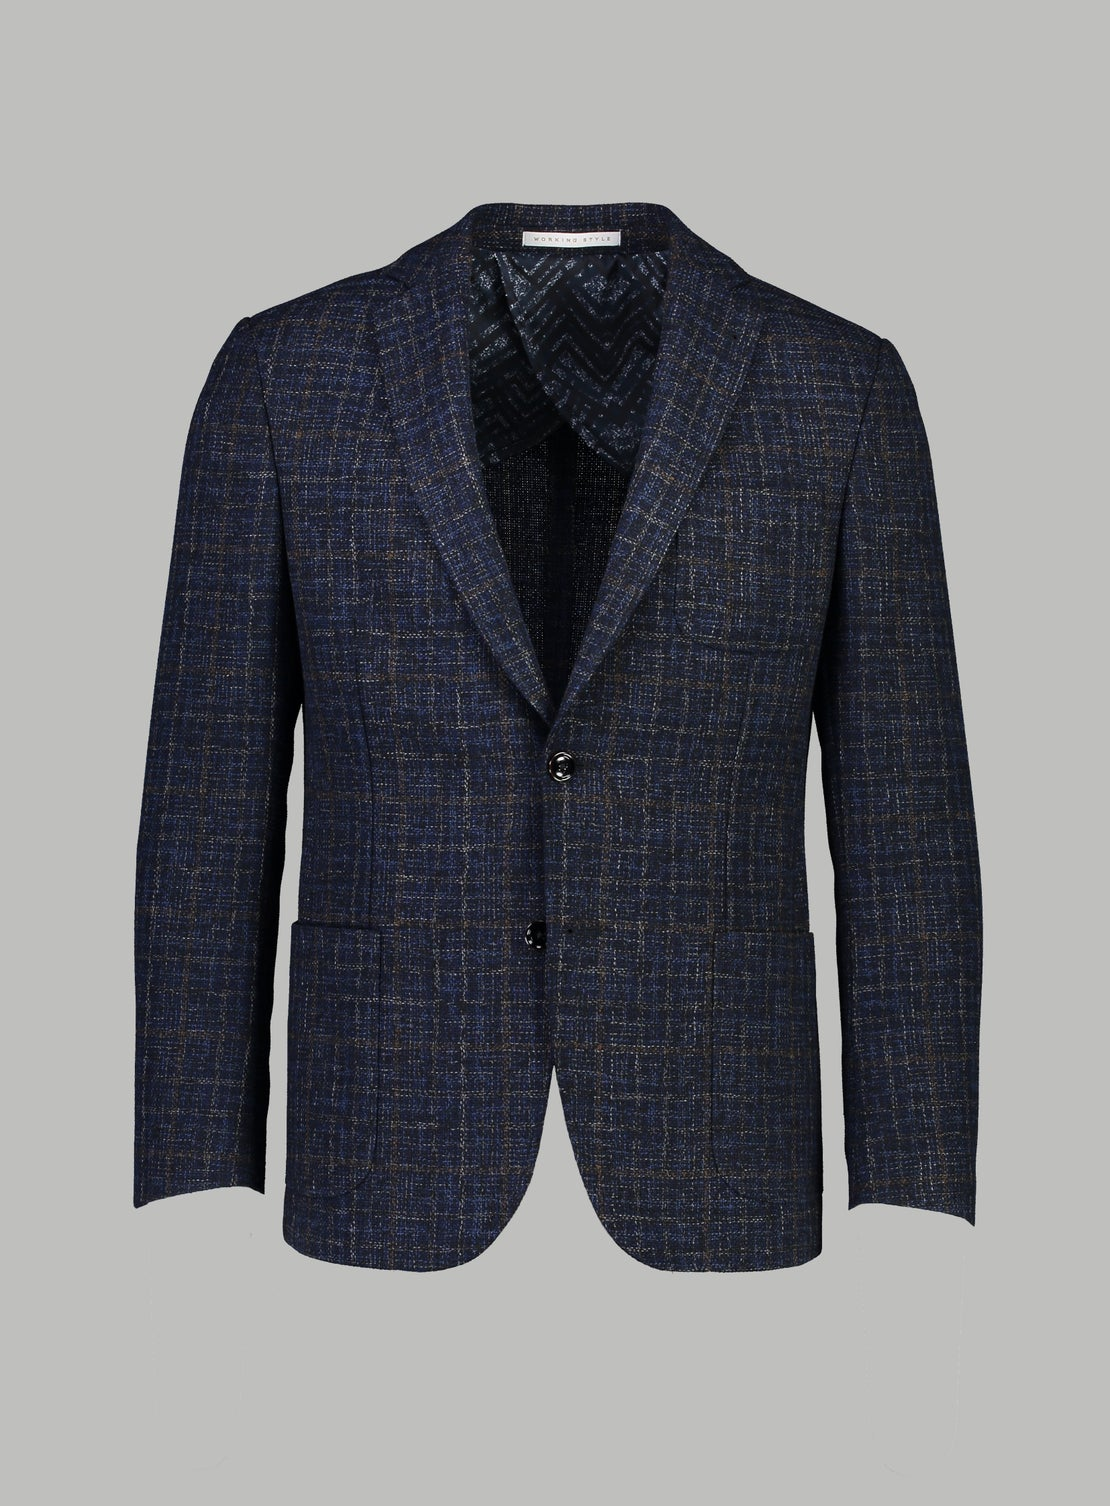 Jean Basket Weave with Overcheck